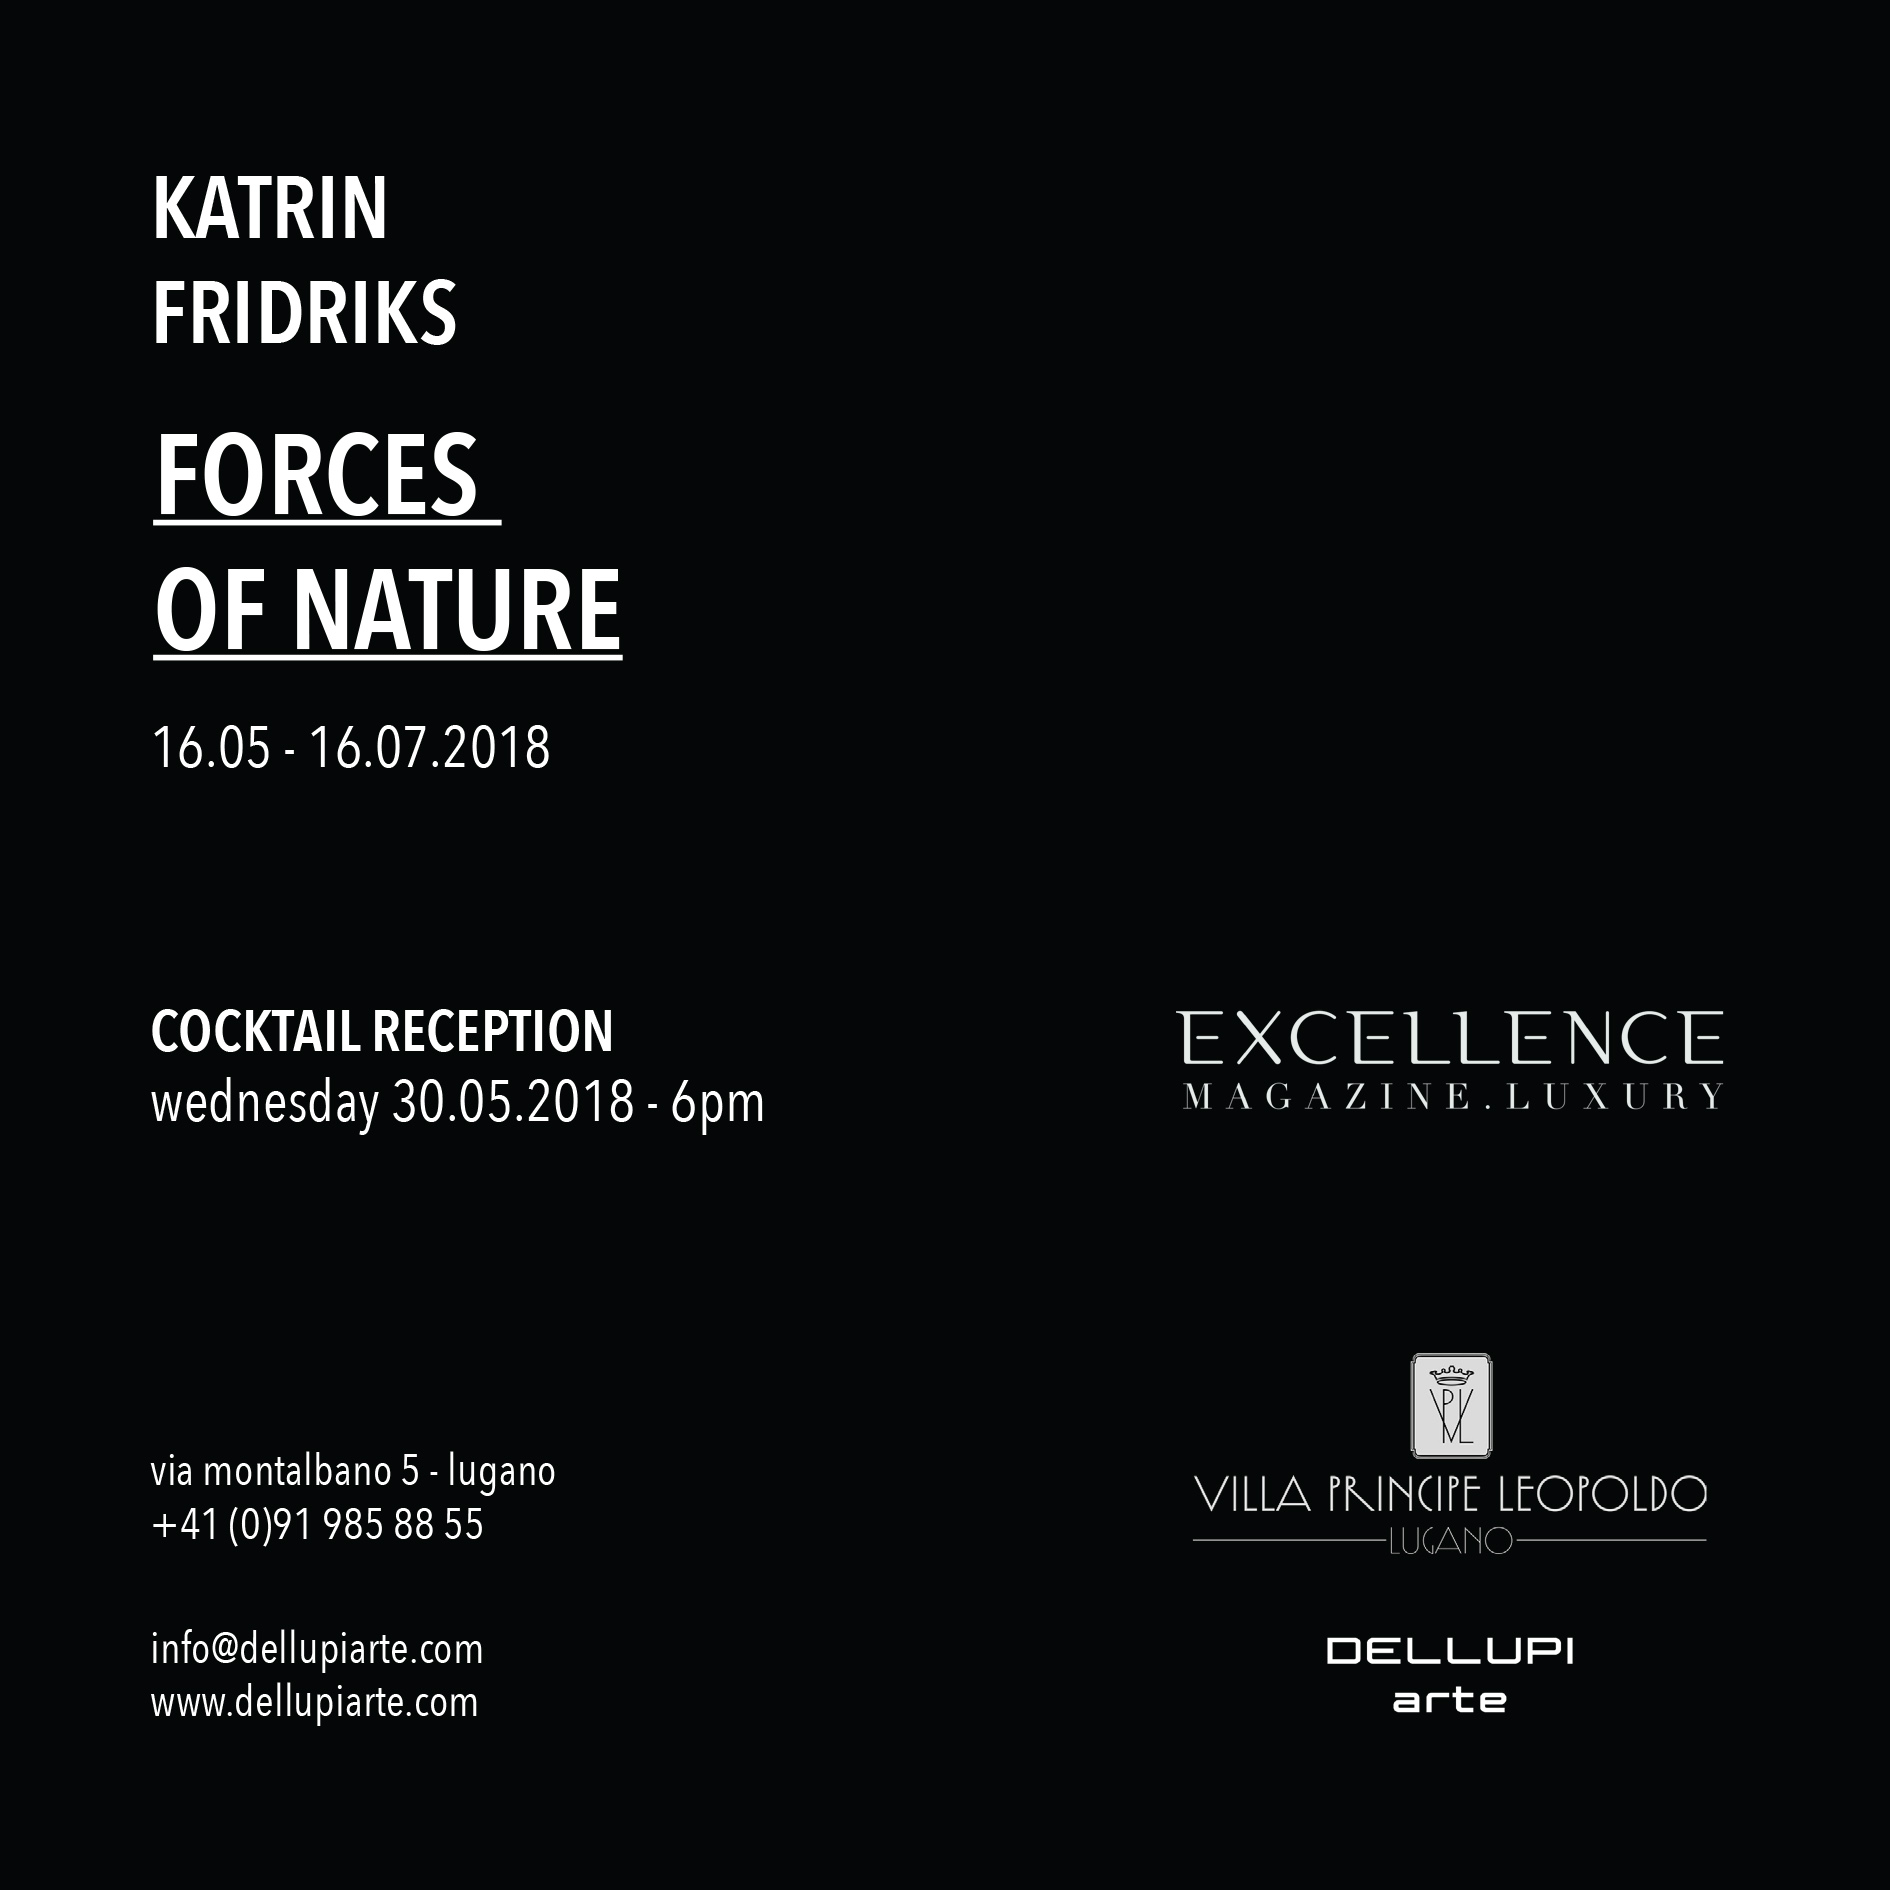 excellence-magazine-katrin-fridriks